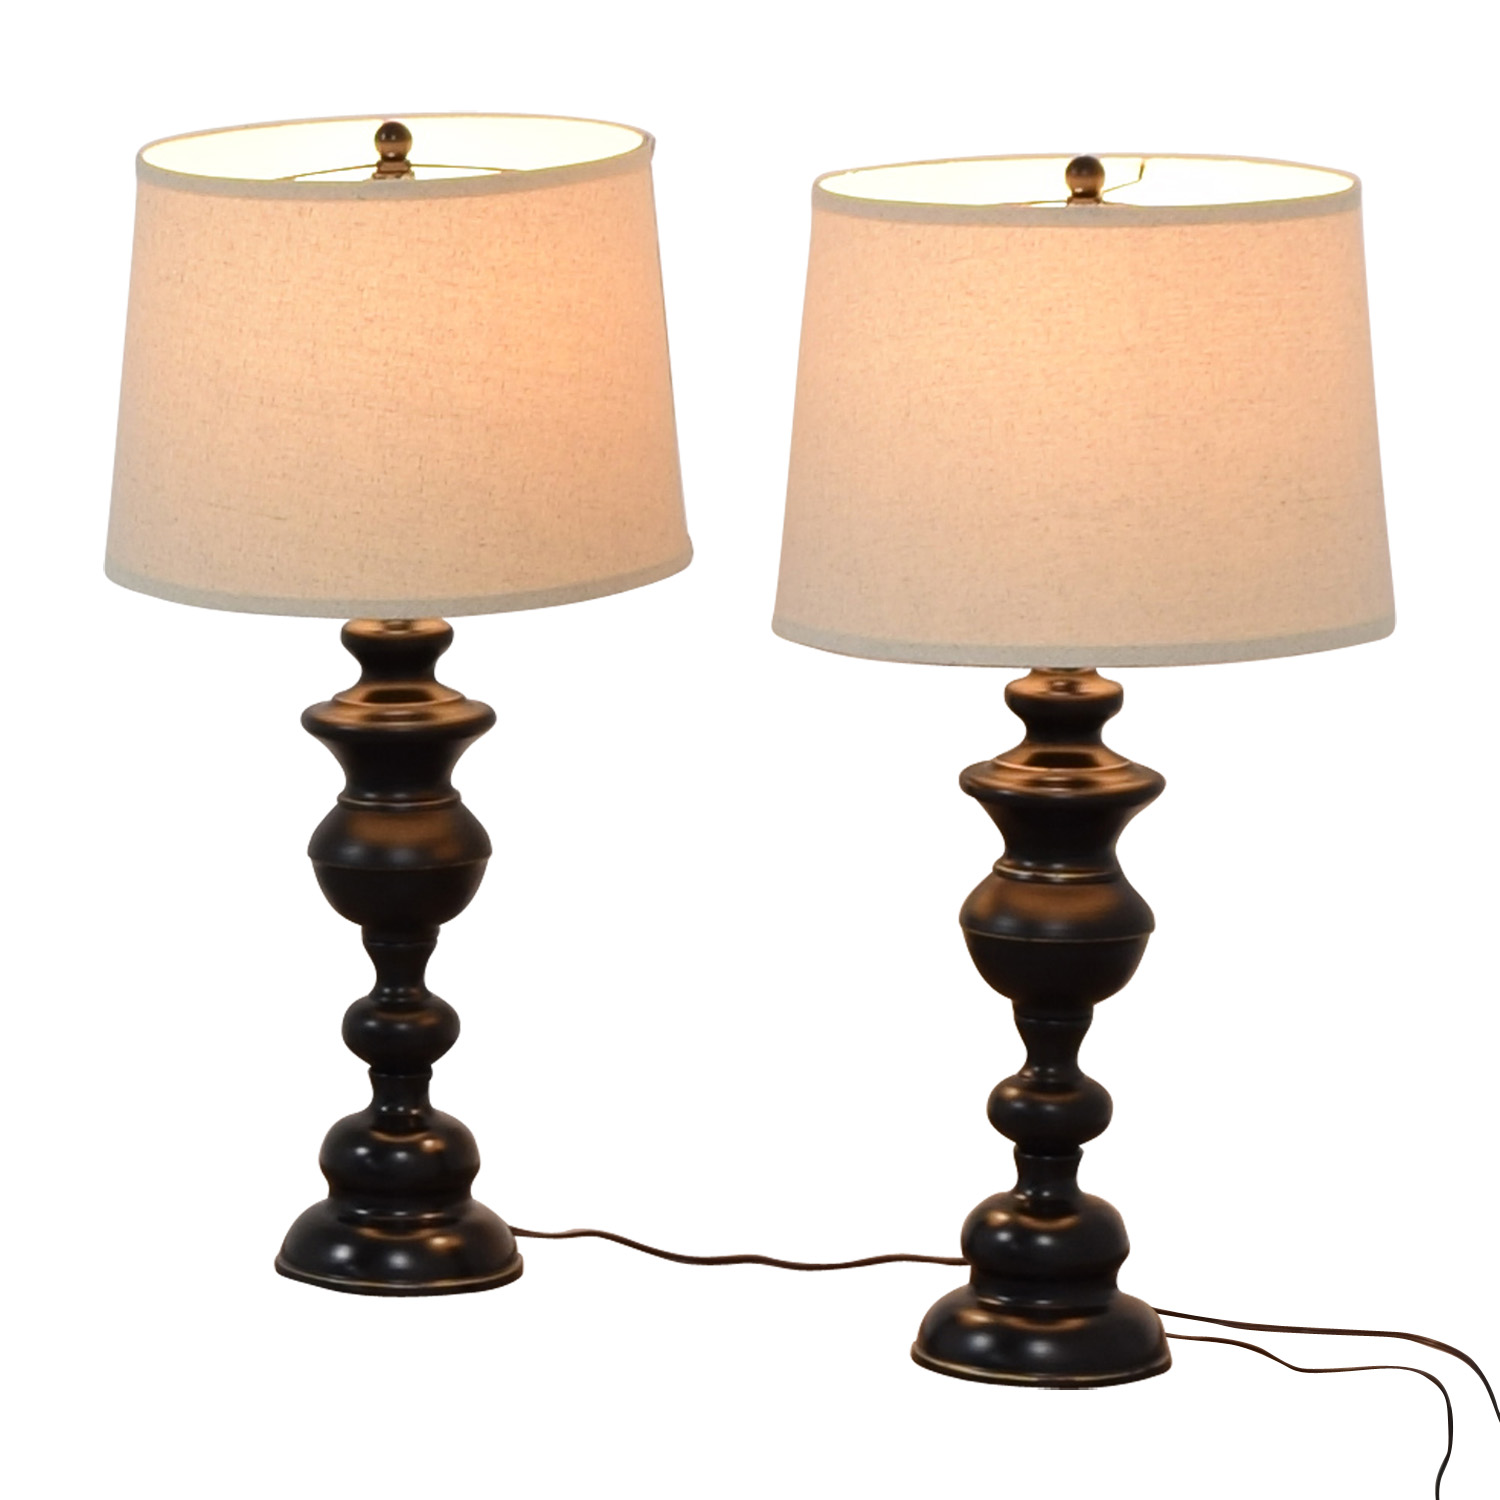 Lamps Online 53 Off Vintage Black Base Table Lamps Decor